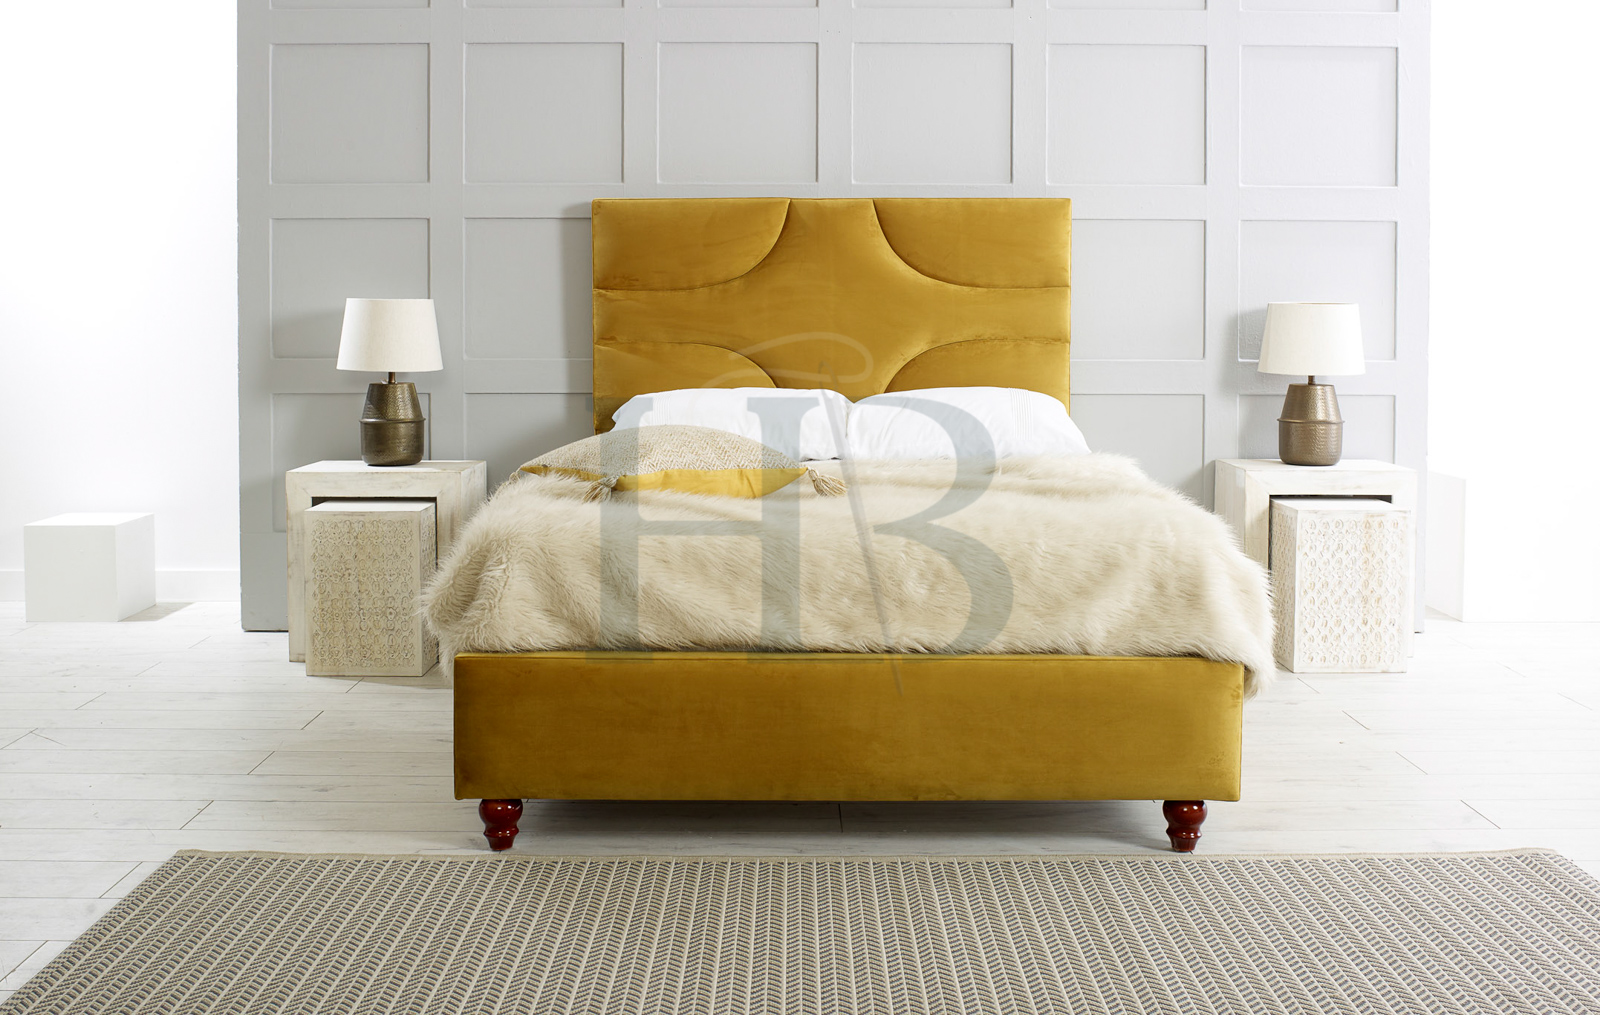 Deep cleaning your upholstered bed frame